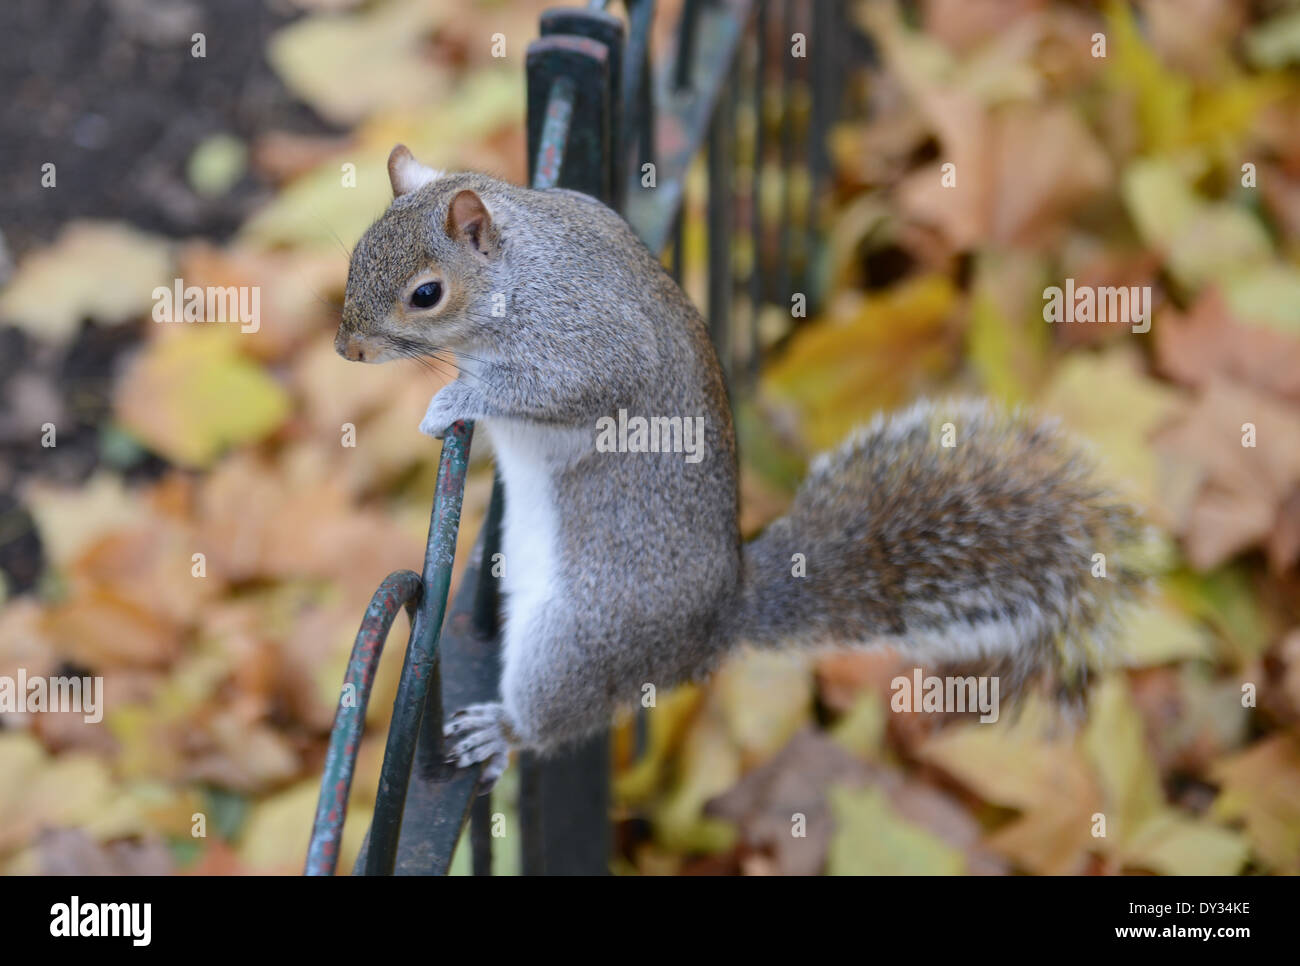 Grey Squirrel on fence, St. James Park, London, UK - Stock Image